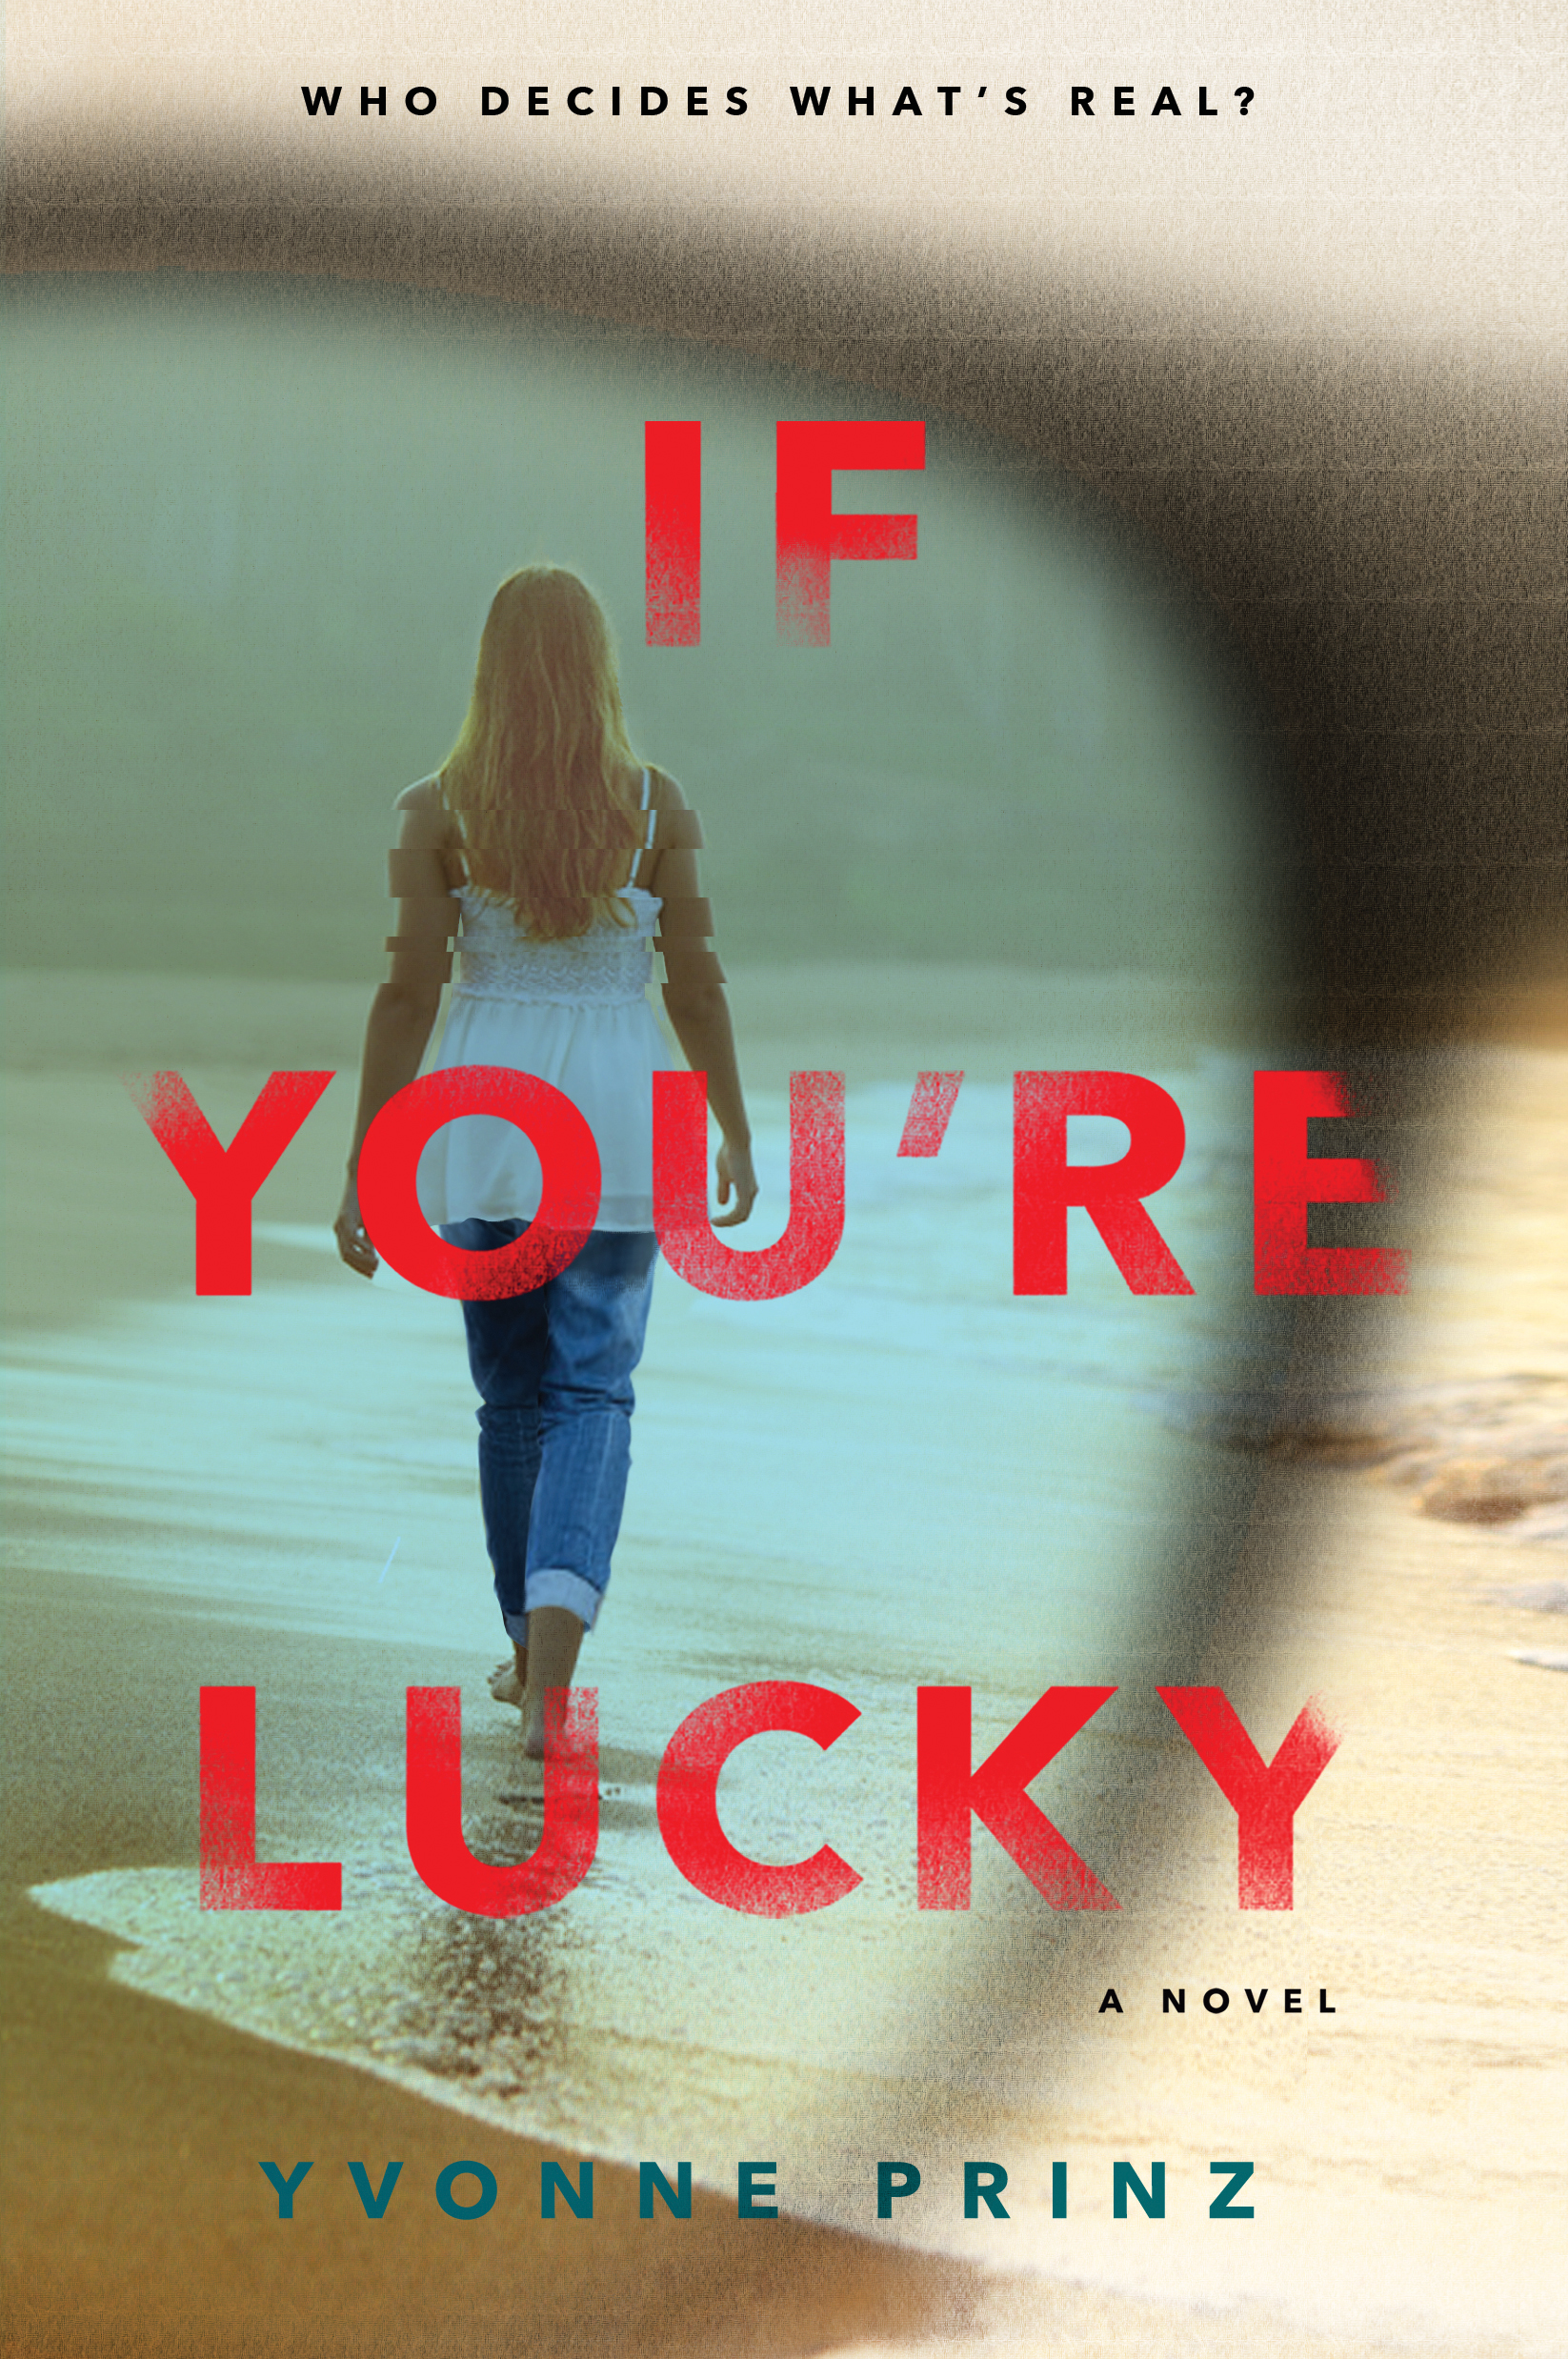 Finding The Truth In False Bay: Yvonne Prinz's If You're Lucky